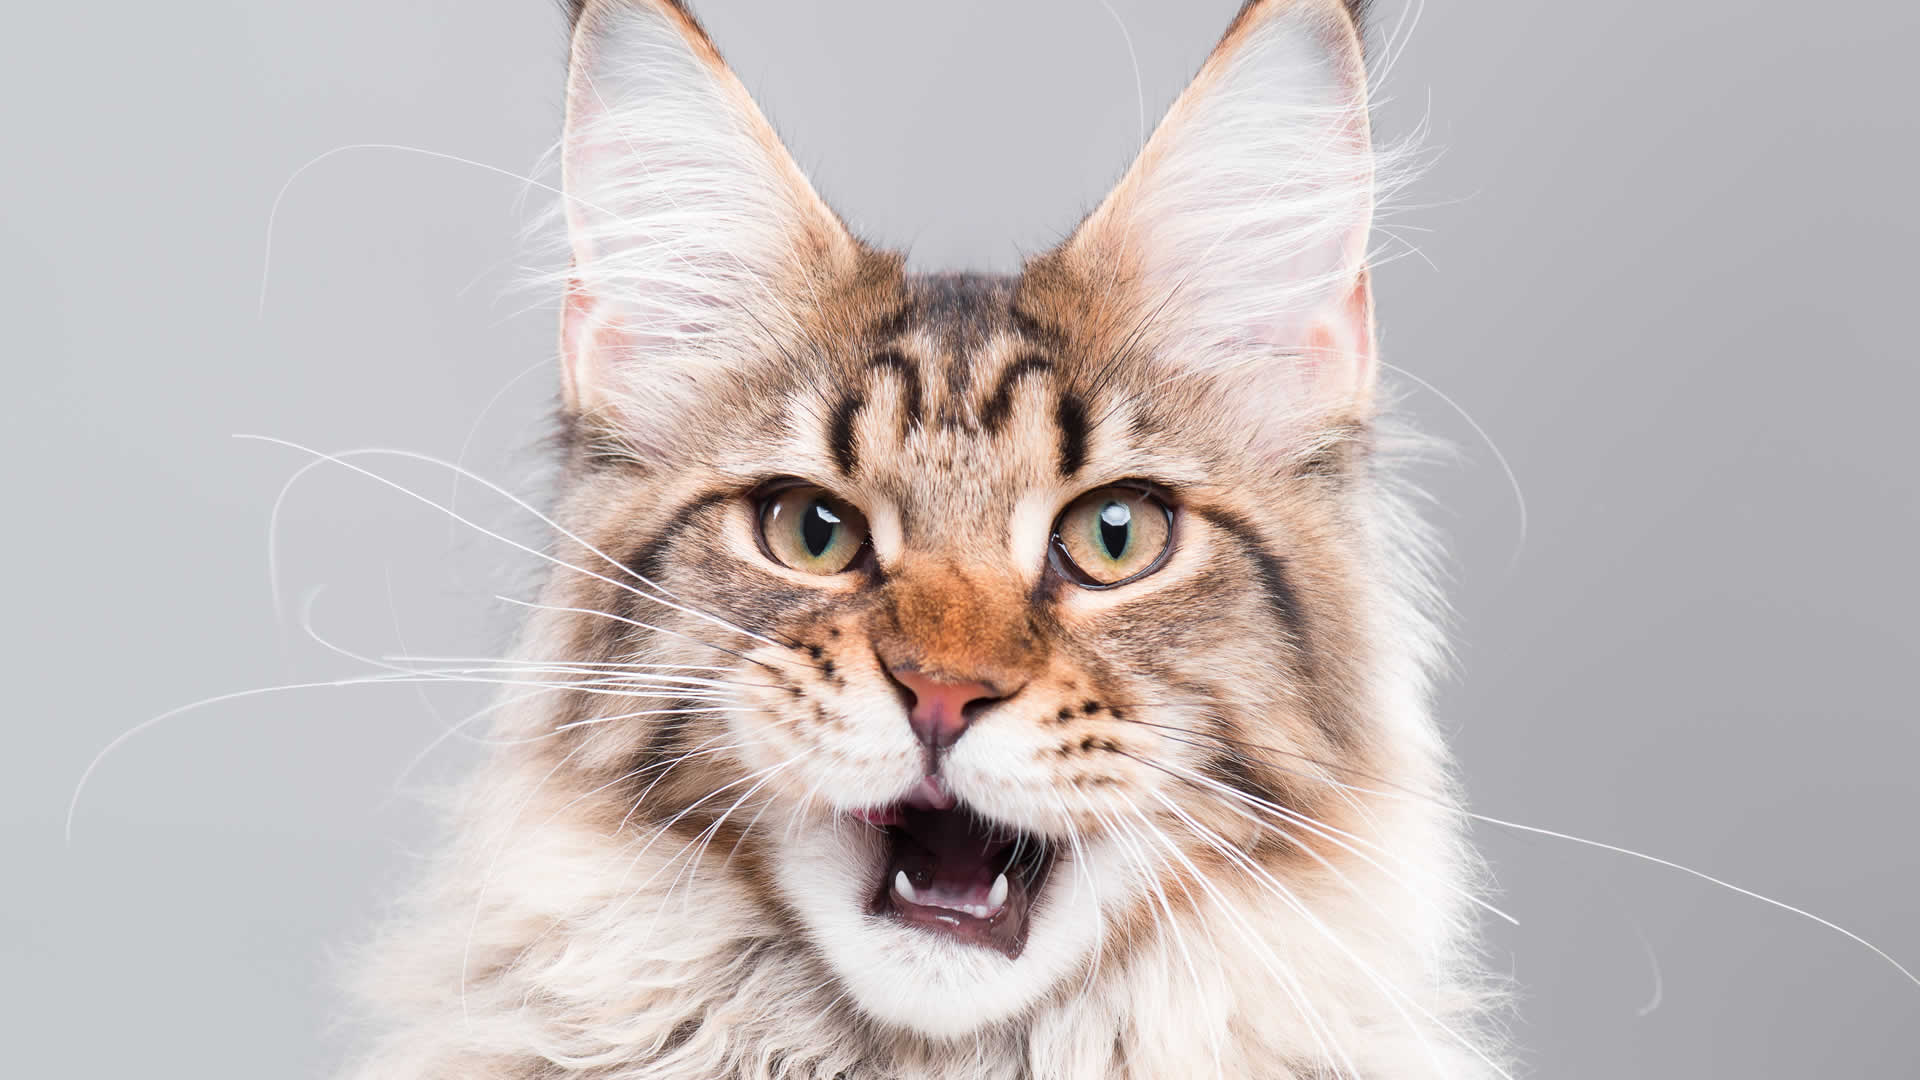 Maine Coon cat with long whiskers